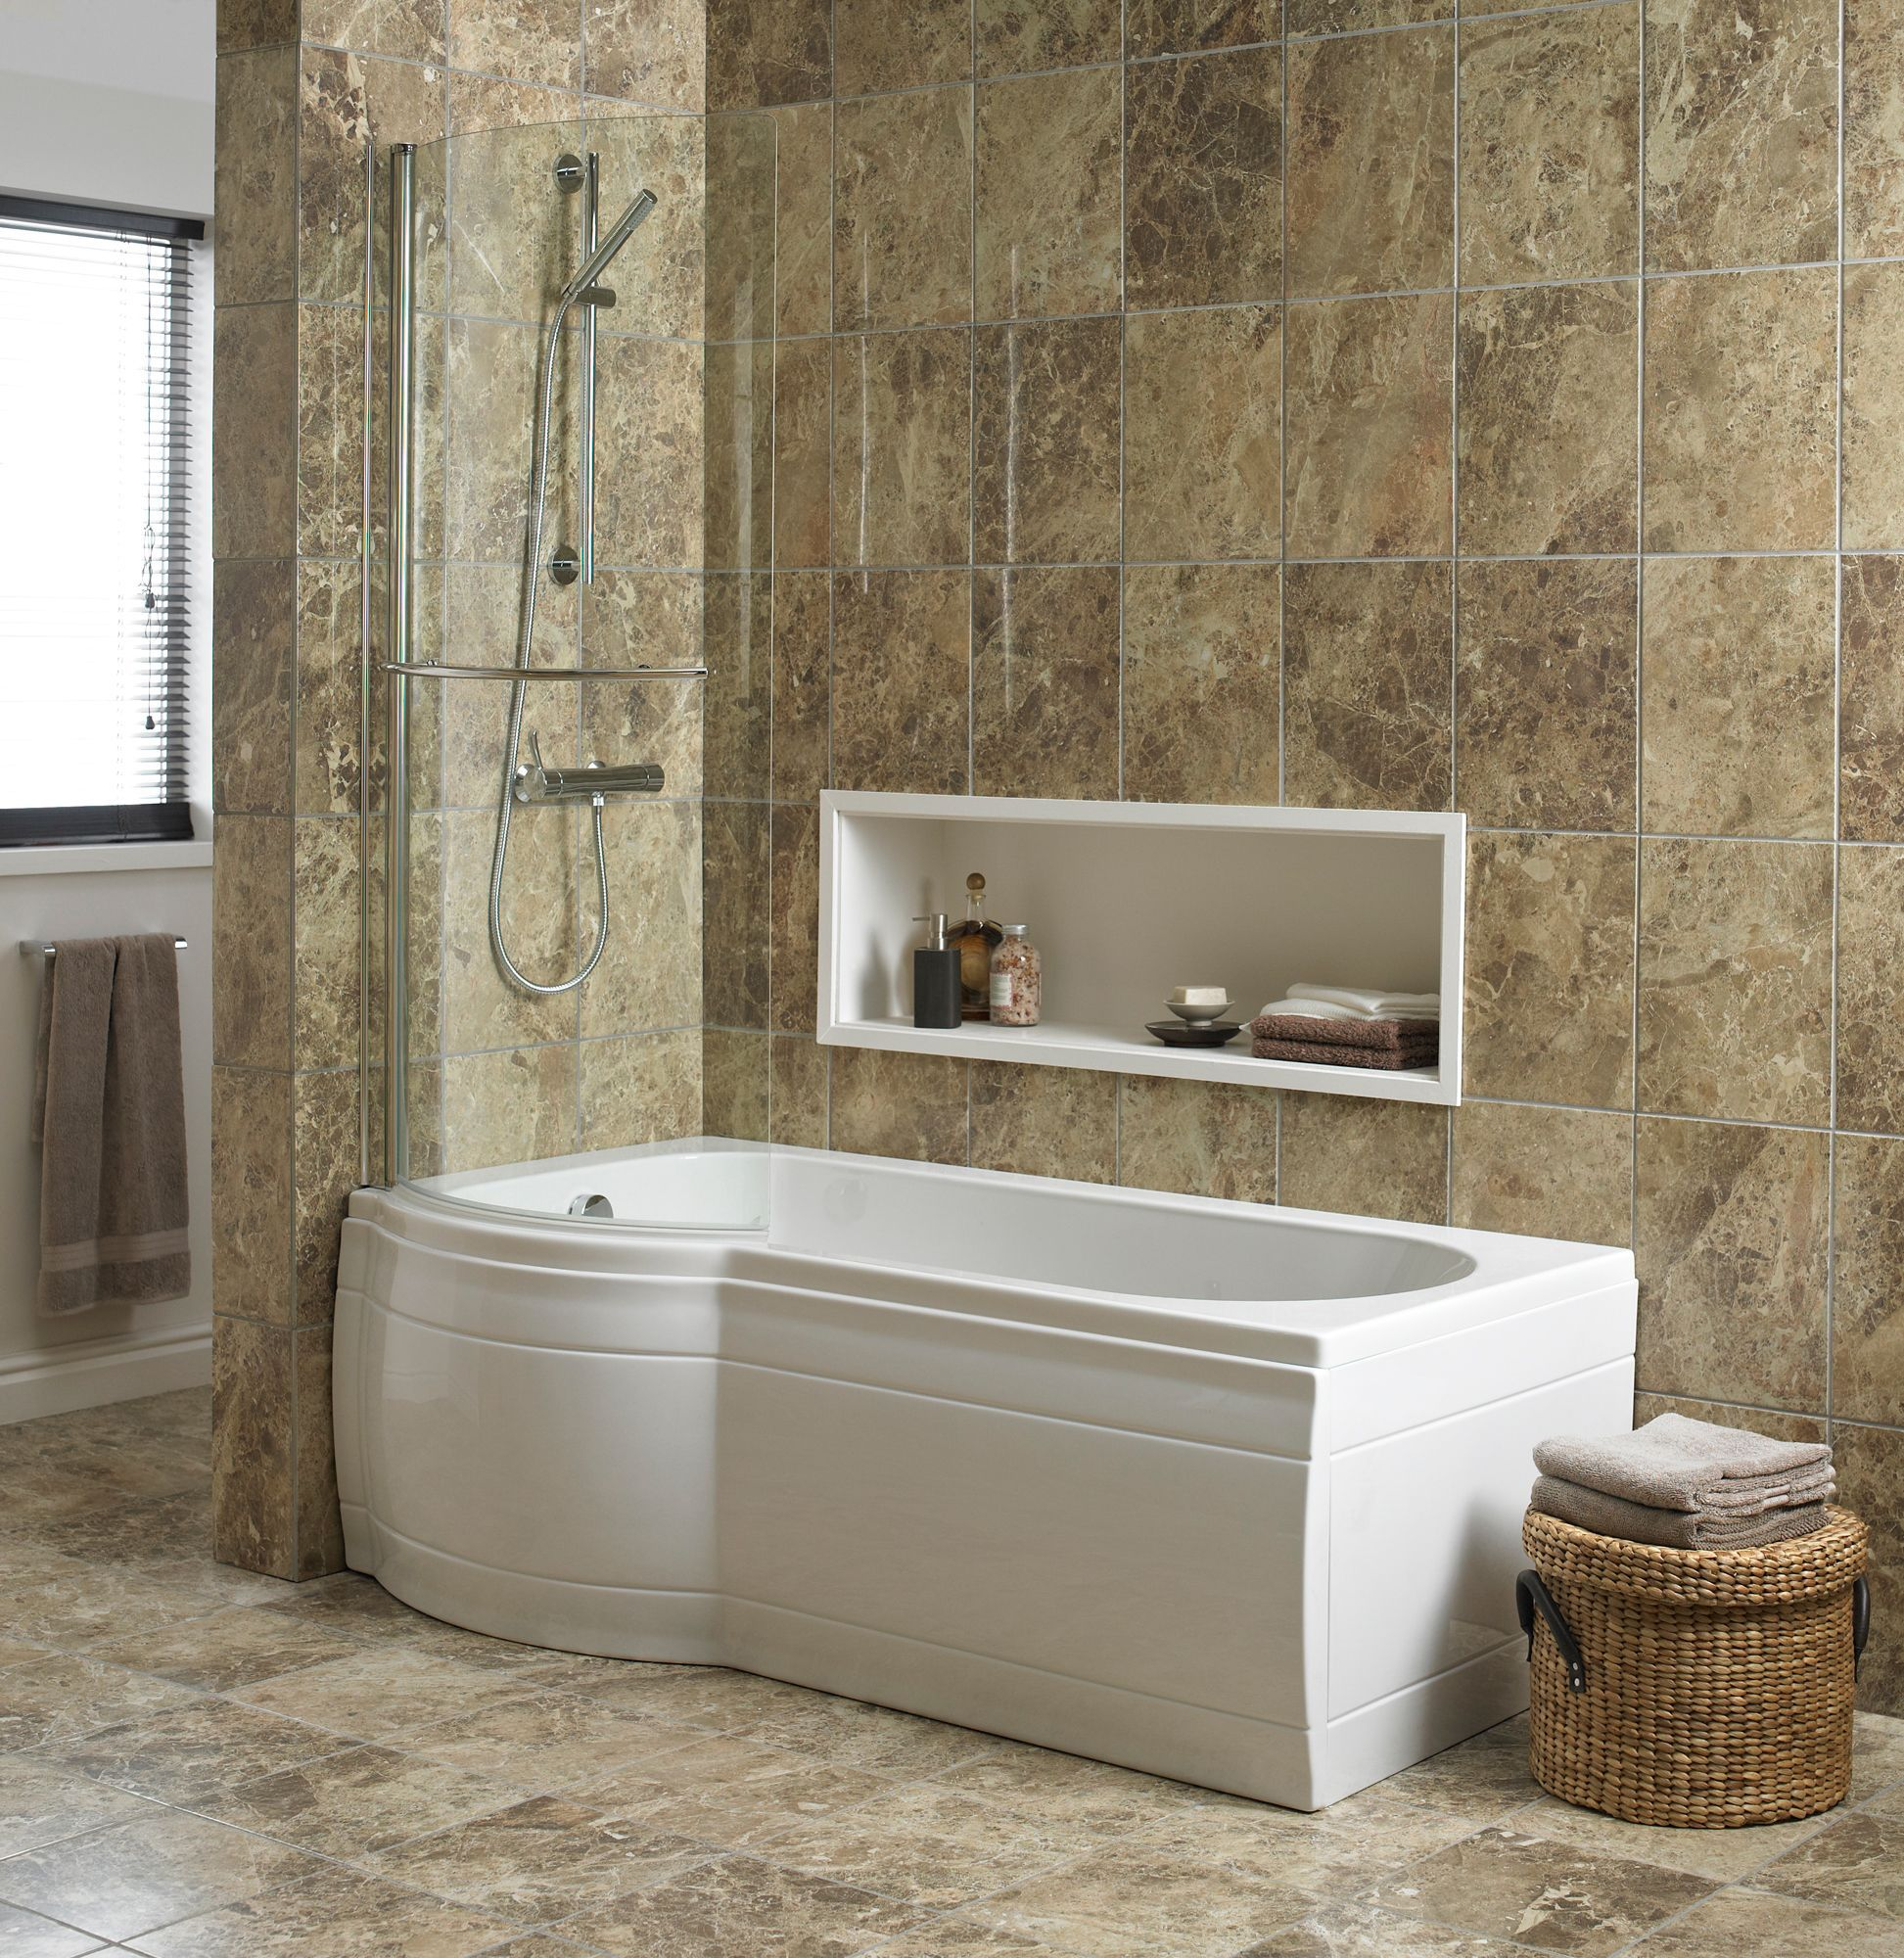 Cooke Lewis Adelphi Curved Bath Screen